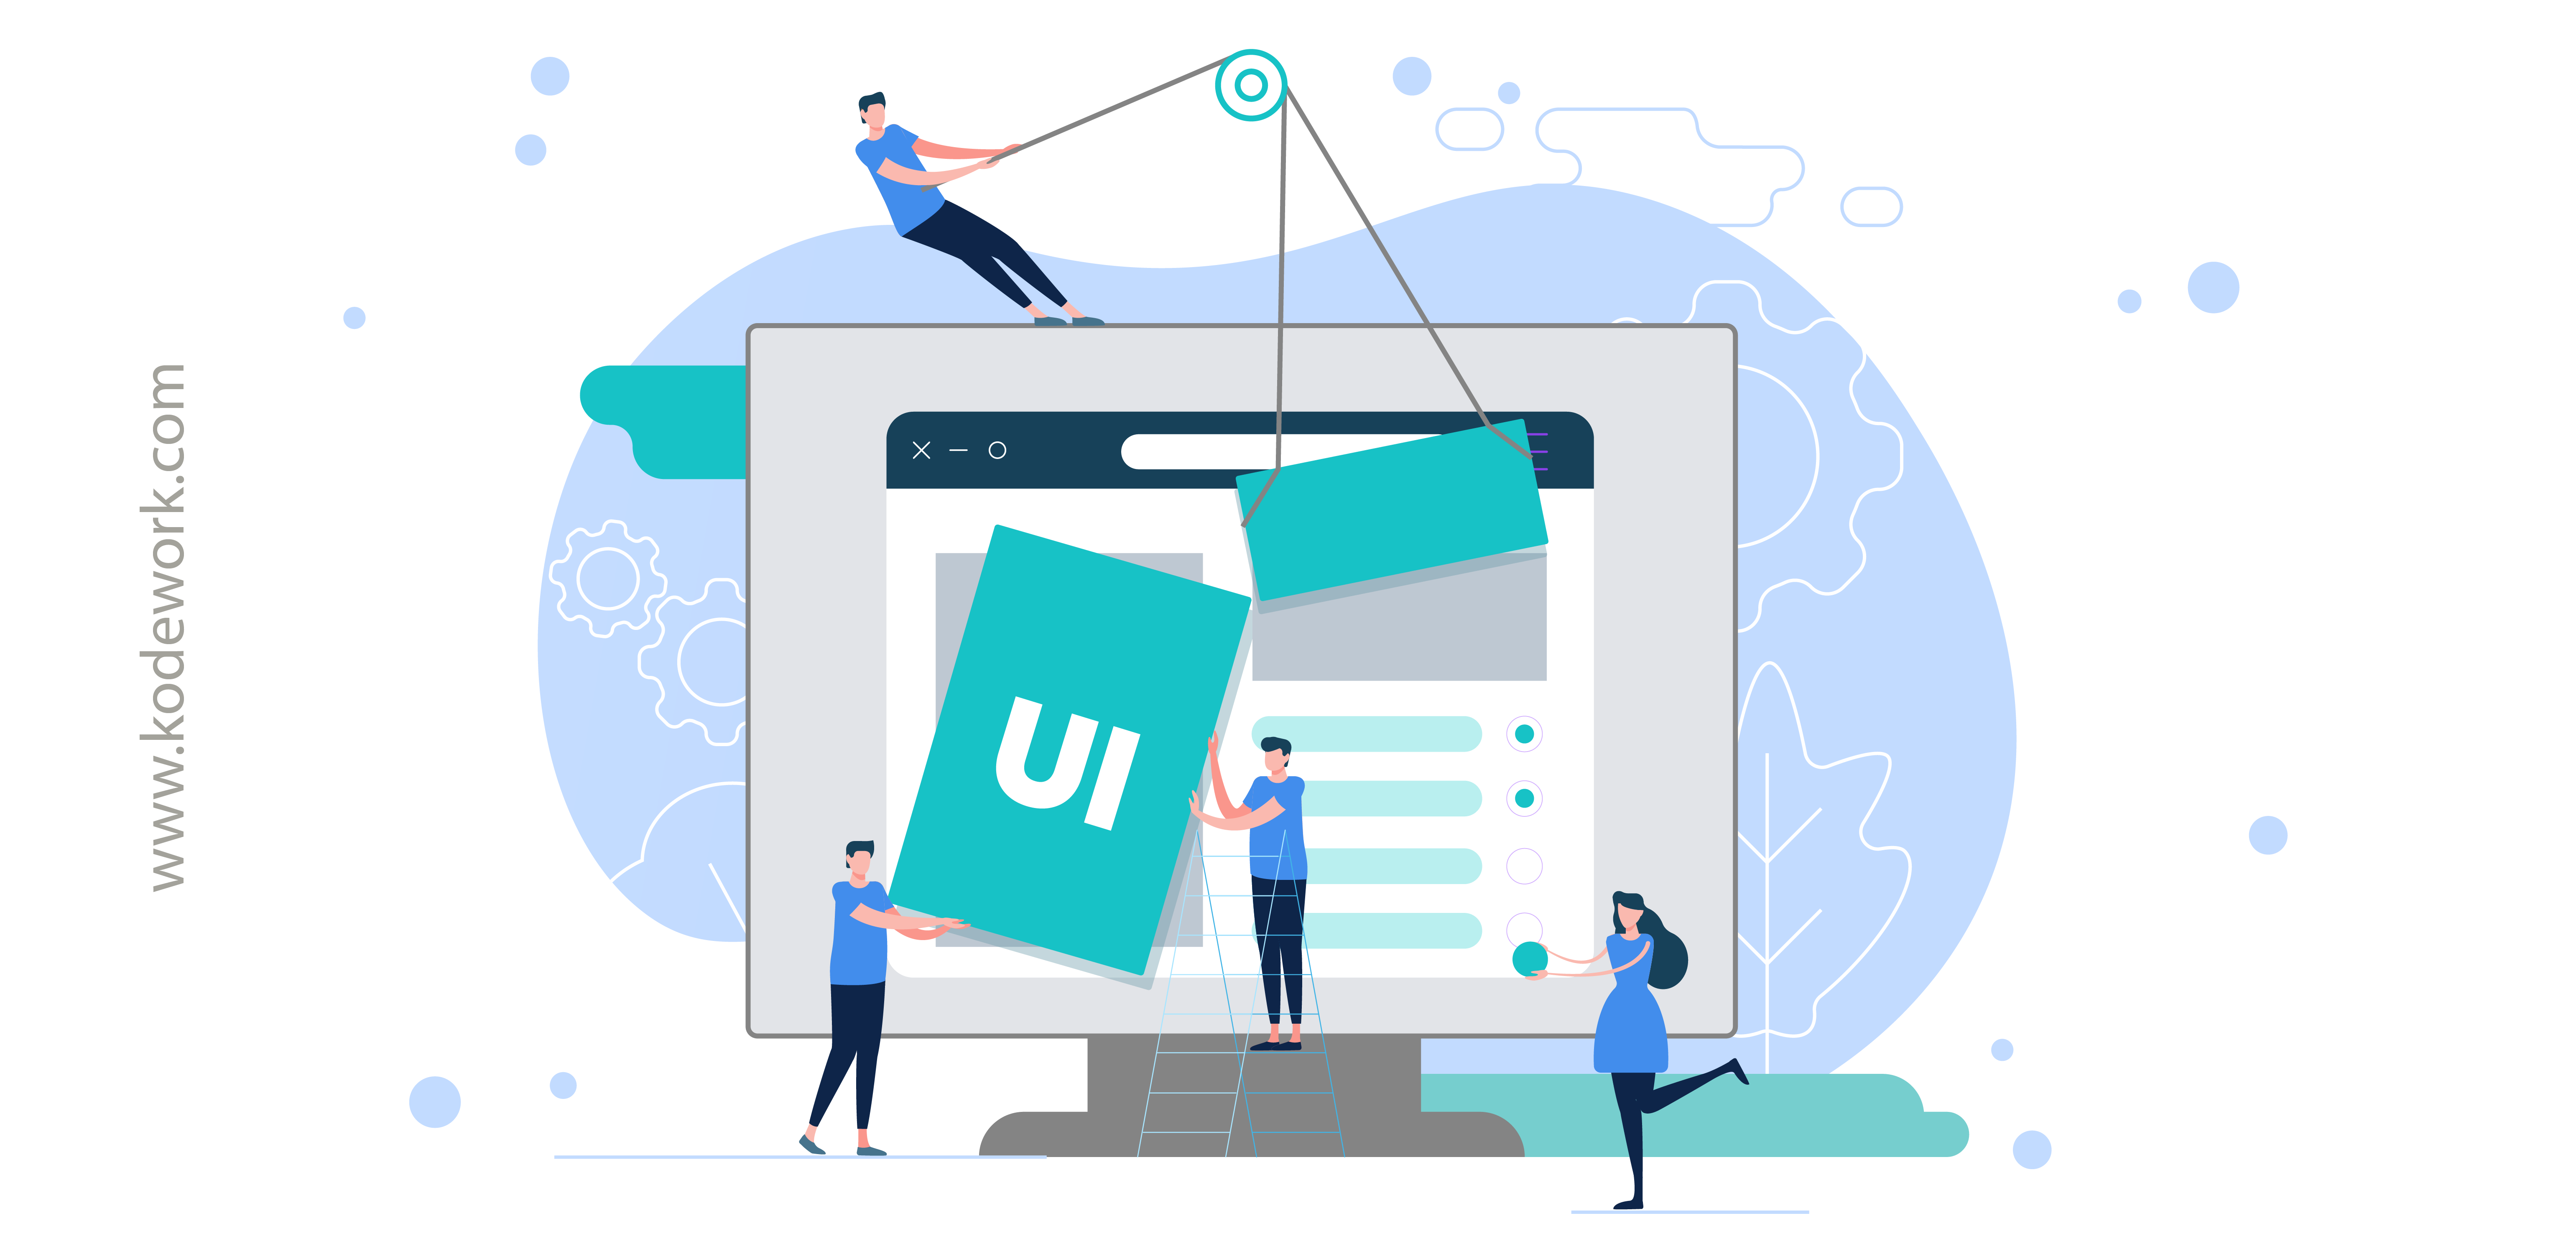 Improve your UI design with these 4 techniques